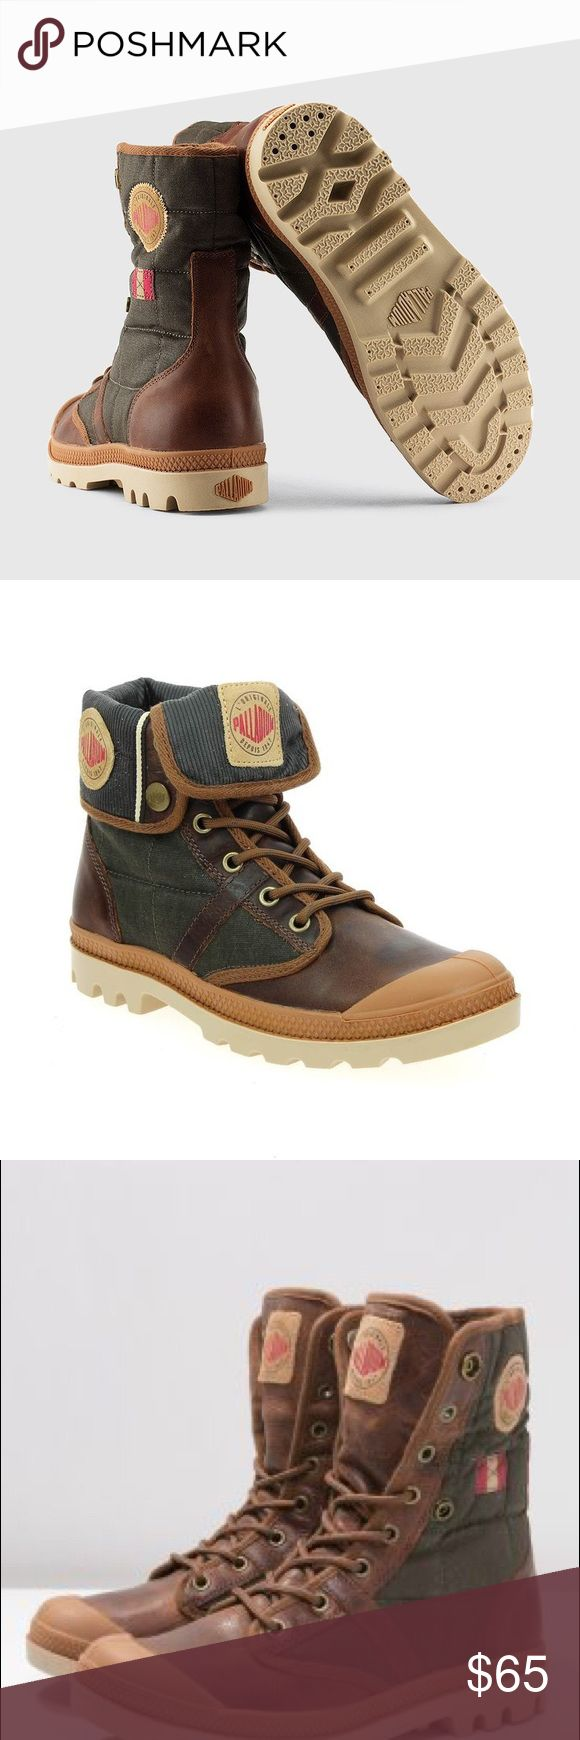 """Women's Palladium Baggy Exp RNL F The Palladium Baggy Exp Rnl F Boots feature a Synthetic upper with a Round Toe . The Rubber outsole lends lasting traction and wear.   Features  Synthetic Rubber sole Shaft measures approximately 7.5"""" from arch The style name / style number is Baggy Exp Rnl F / 93600-260-M Color: Khaki Material: Synthetic Measurements: Shaft measures 7.5"""", Circumference measures 9"""" and 1"""" heel Width: B(M) Palladium Shoes Lace Up Boots"""